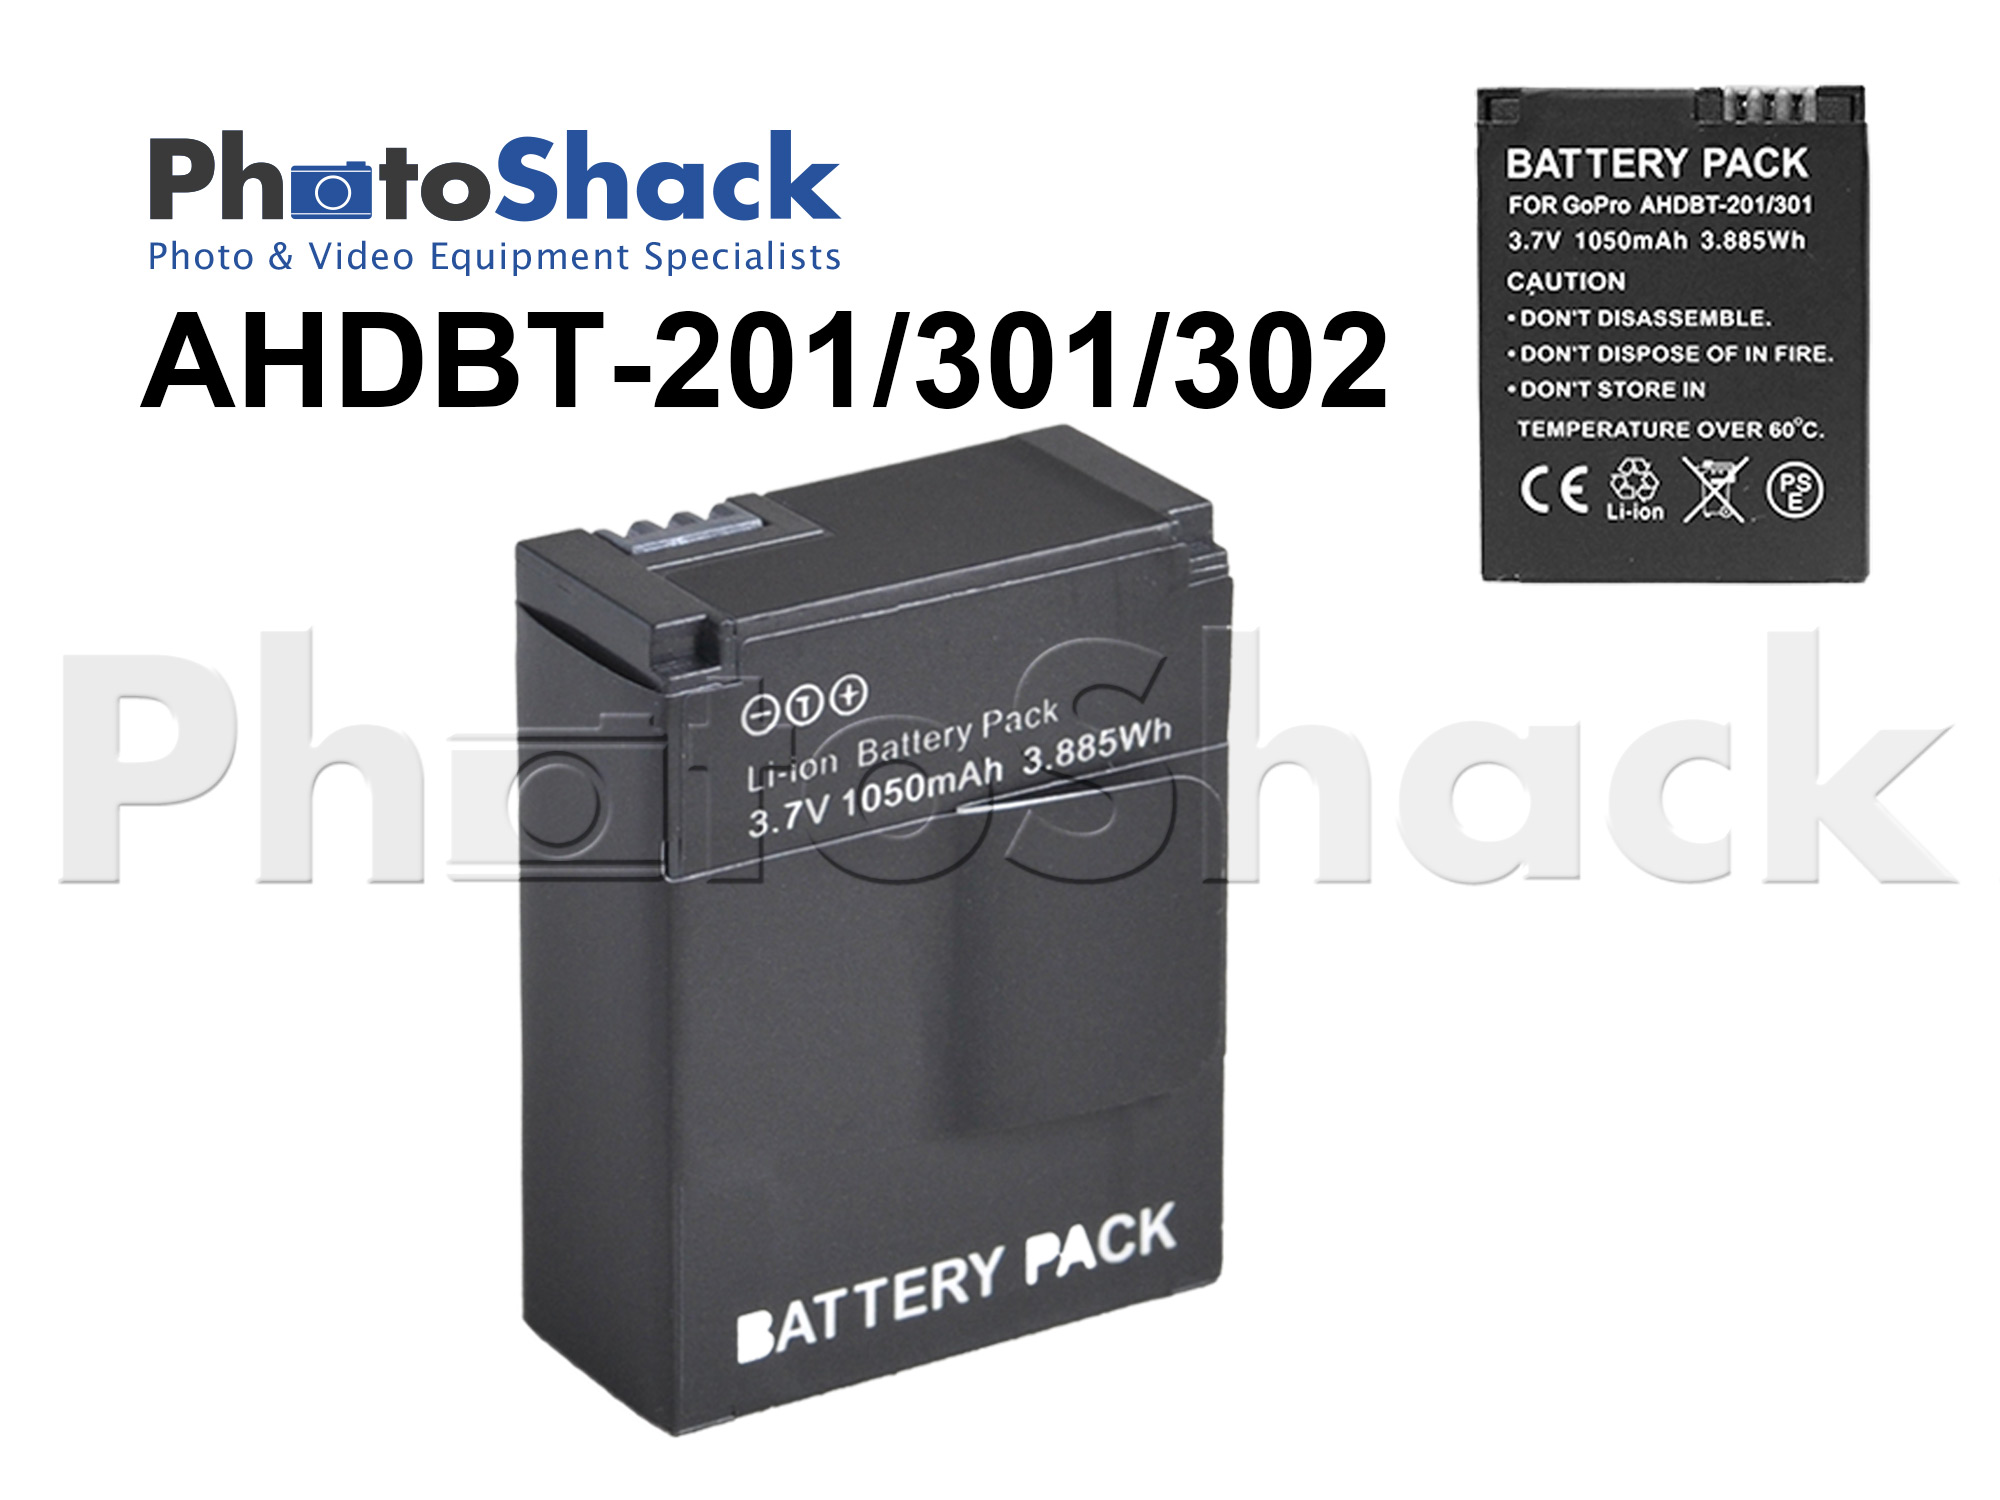 AHDBT-201/301/302 Battery (1050mAh) for GoPro Hero3 / Hero3+